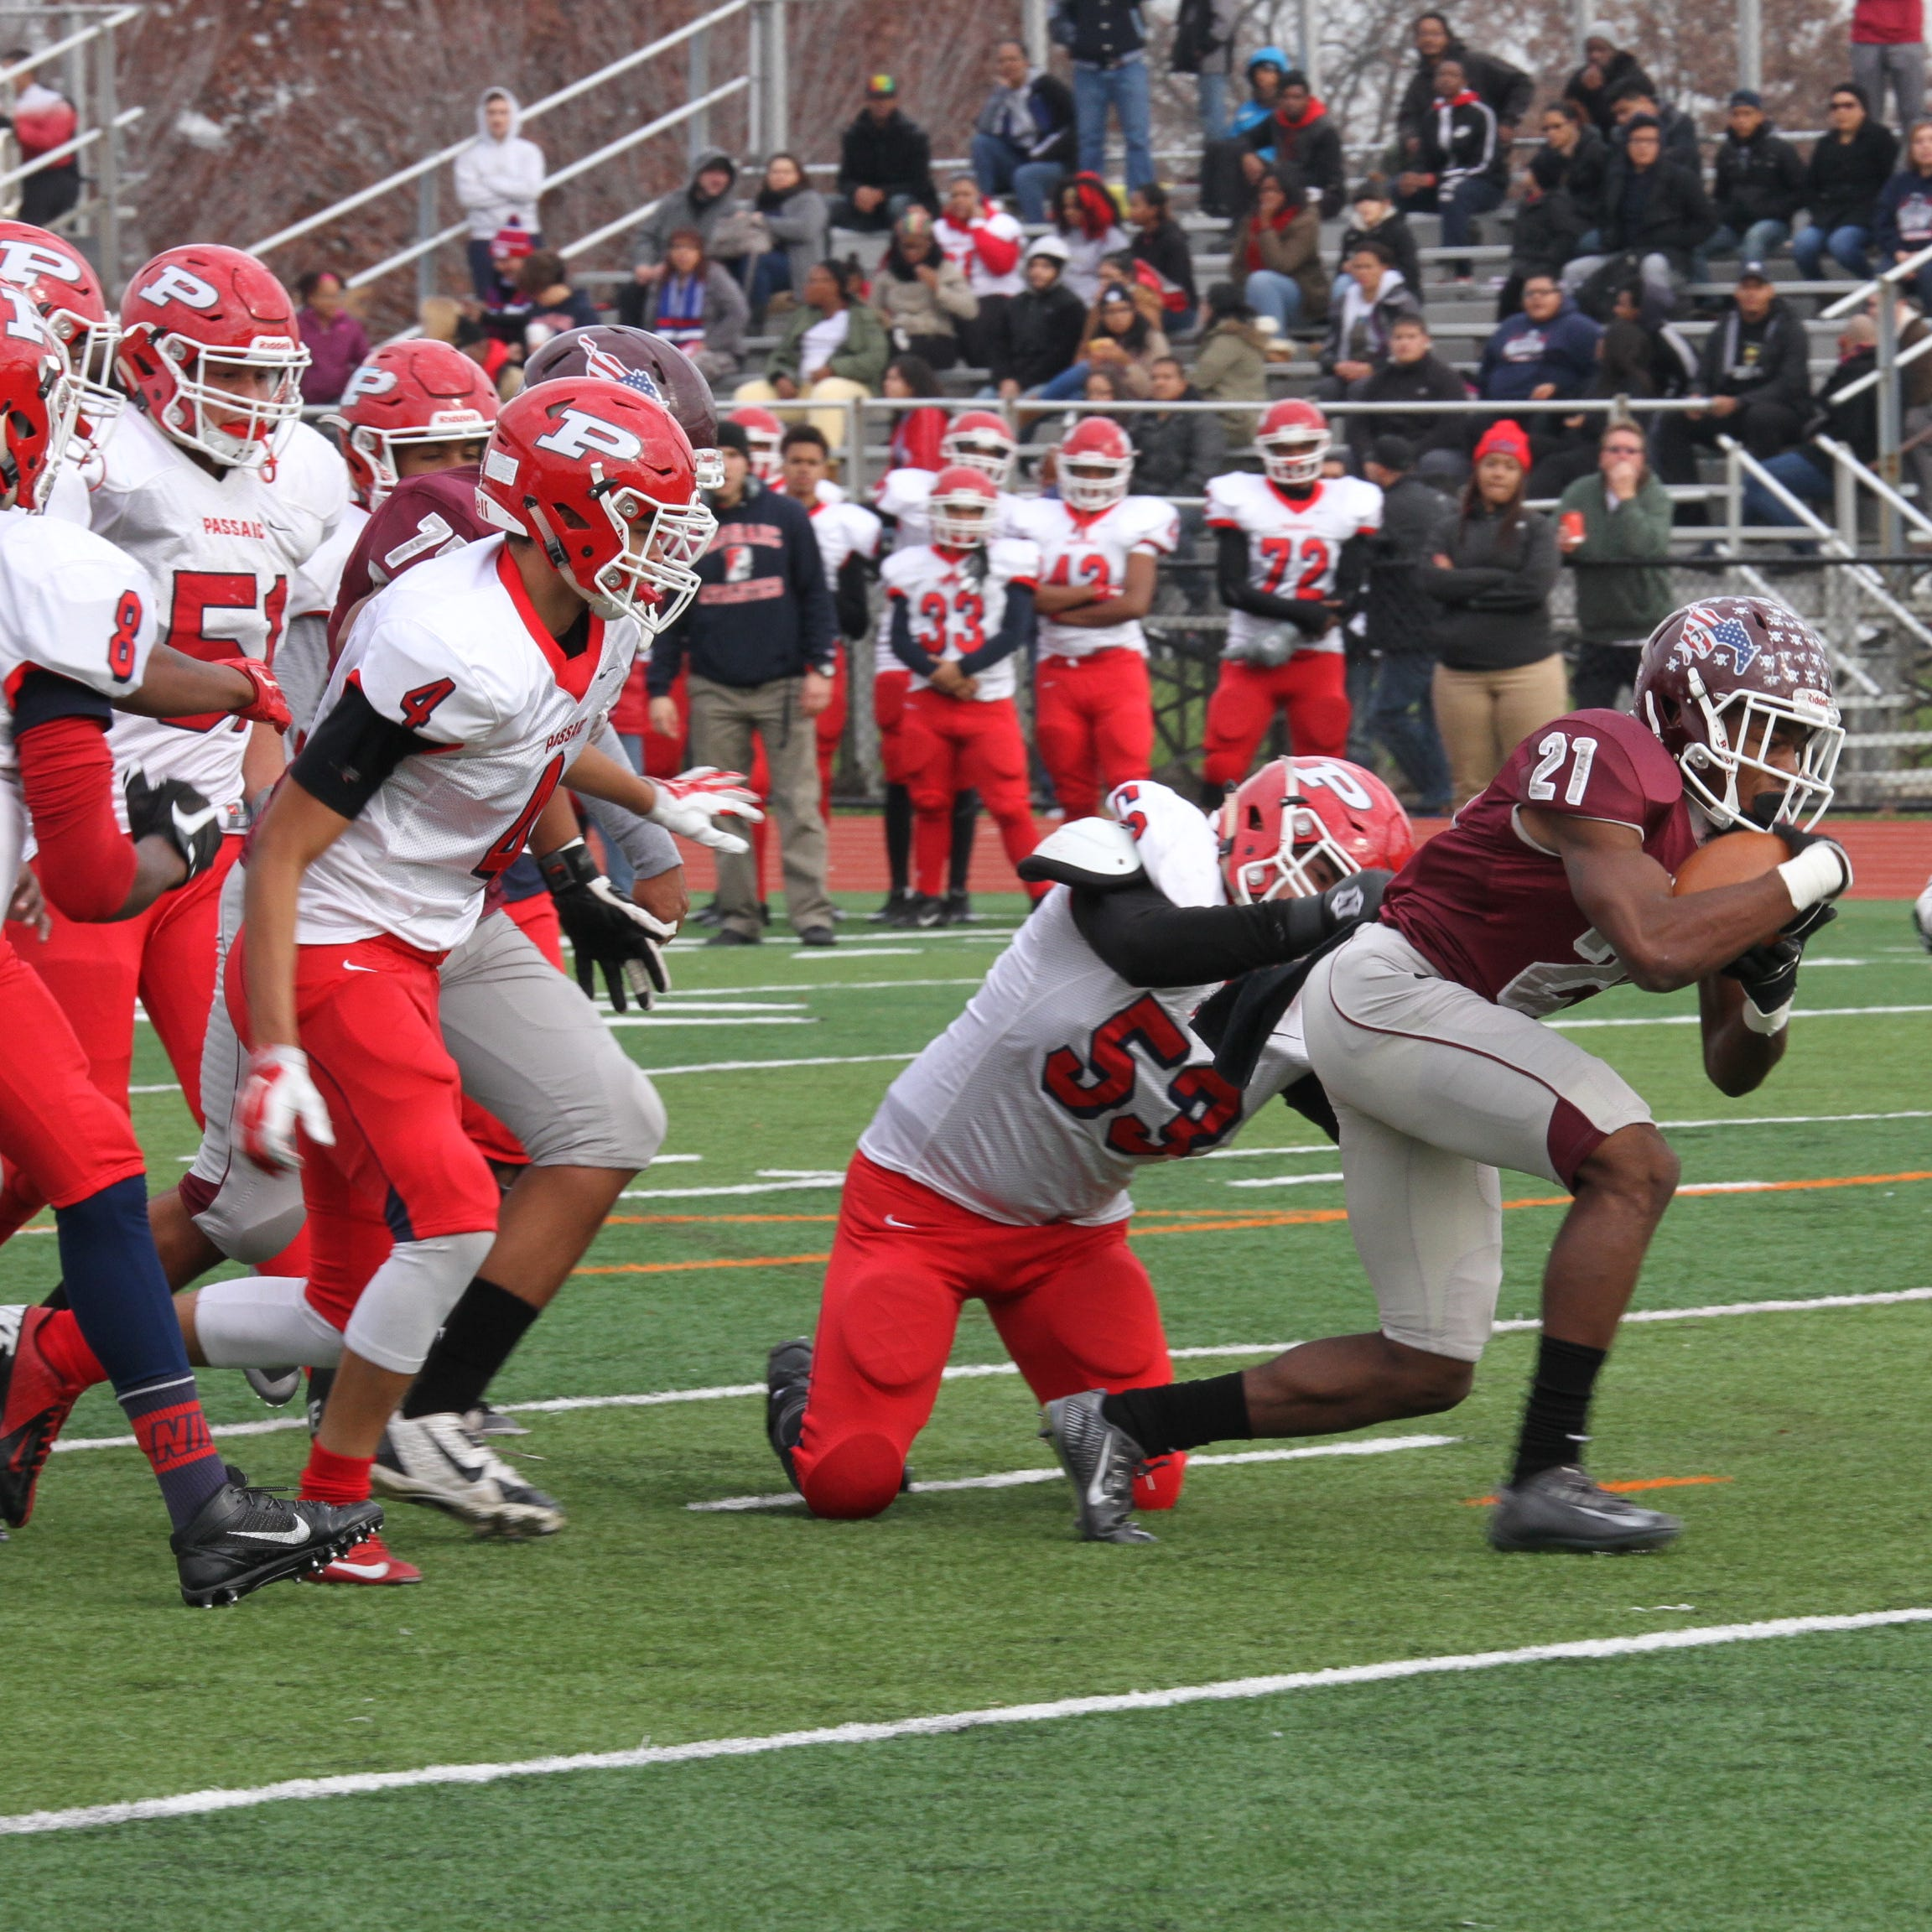 No more Thanksgiving Day football game for Clifton and Passaic high schools